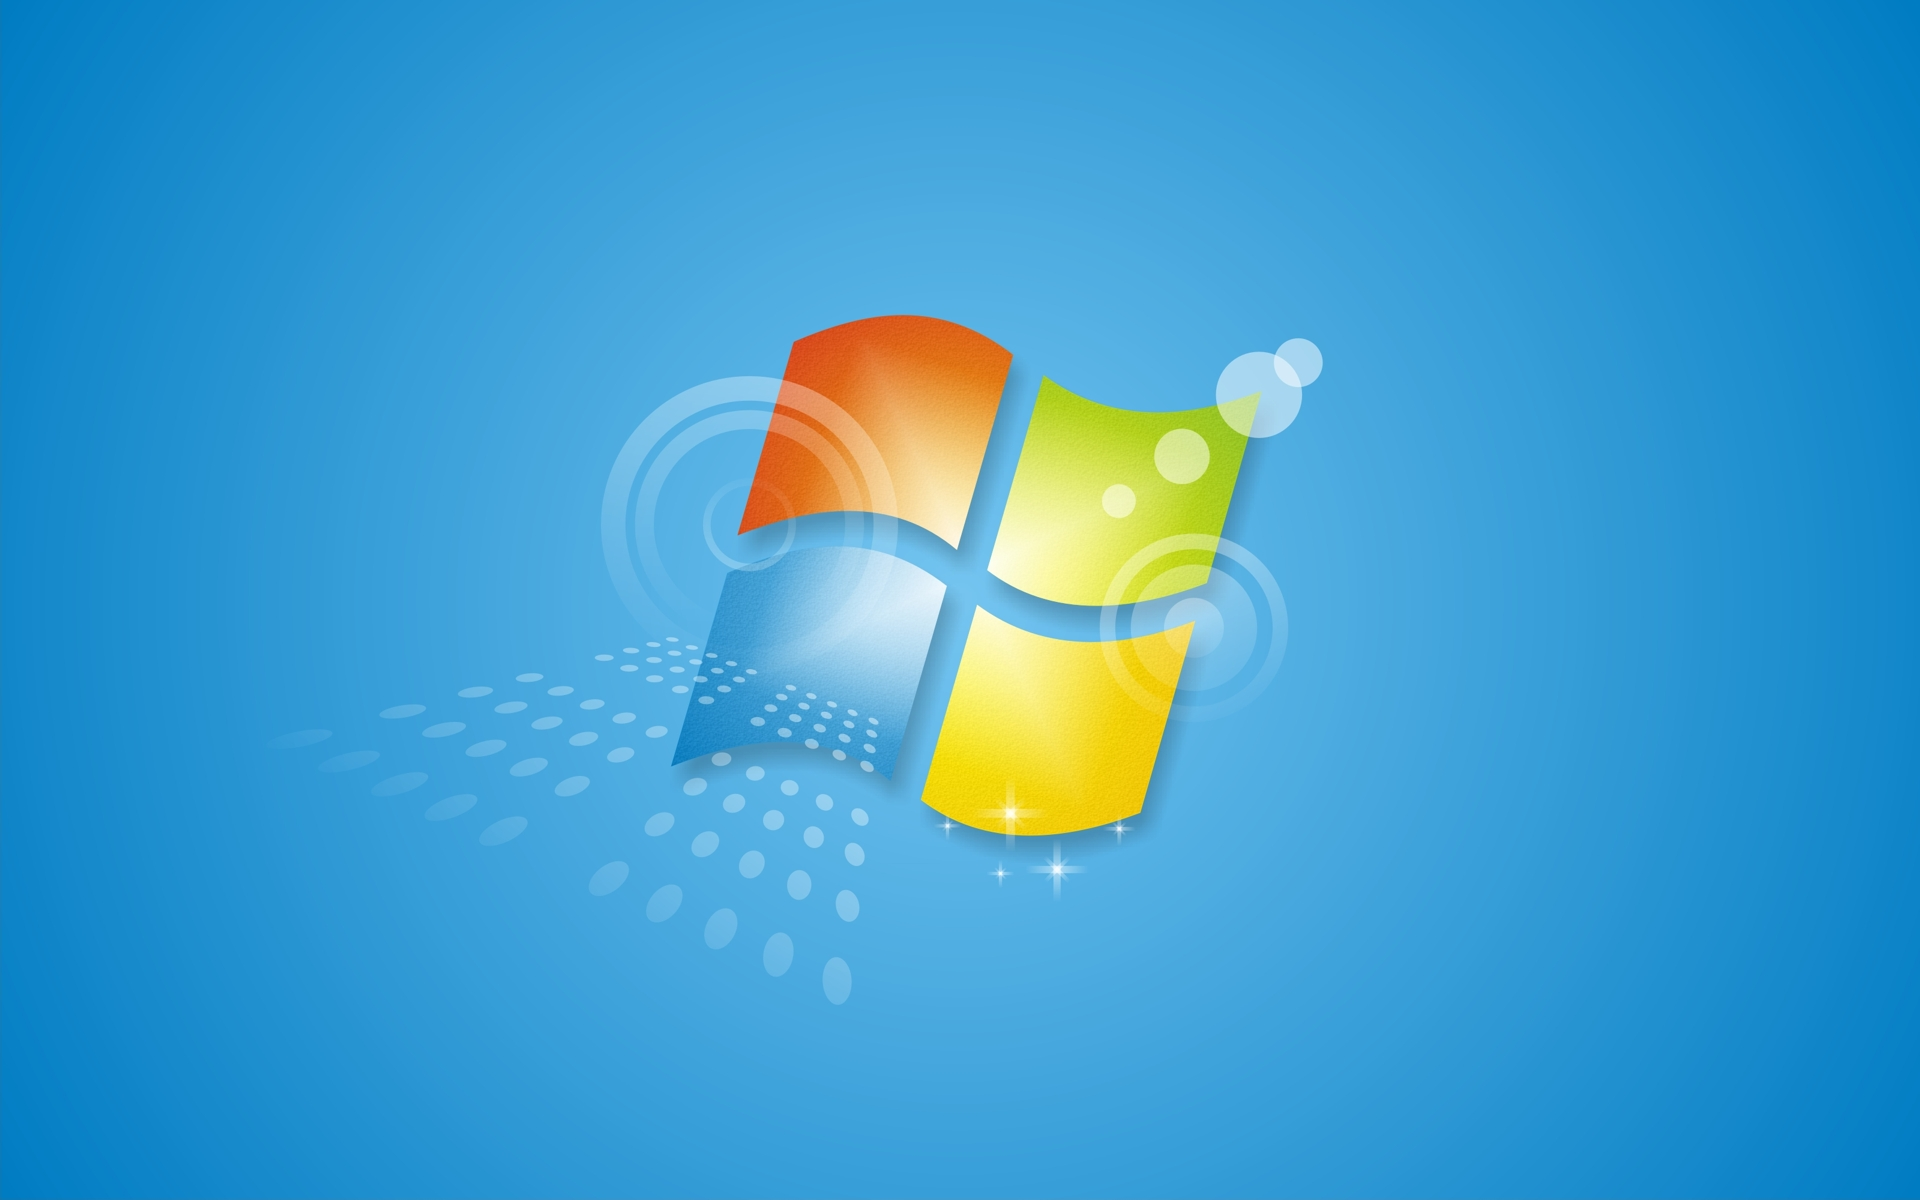 windows 7 arrives this